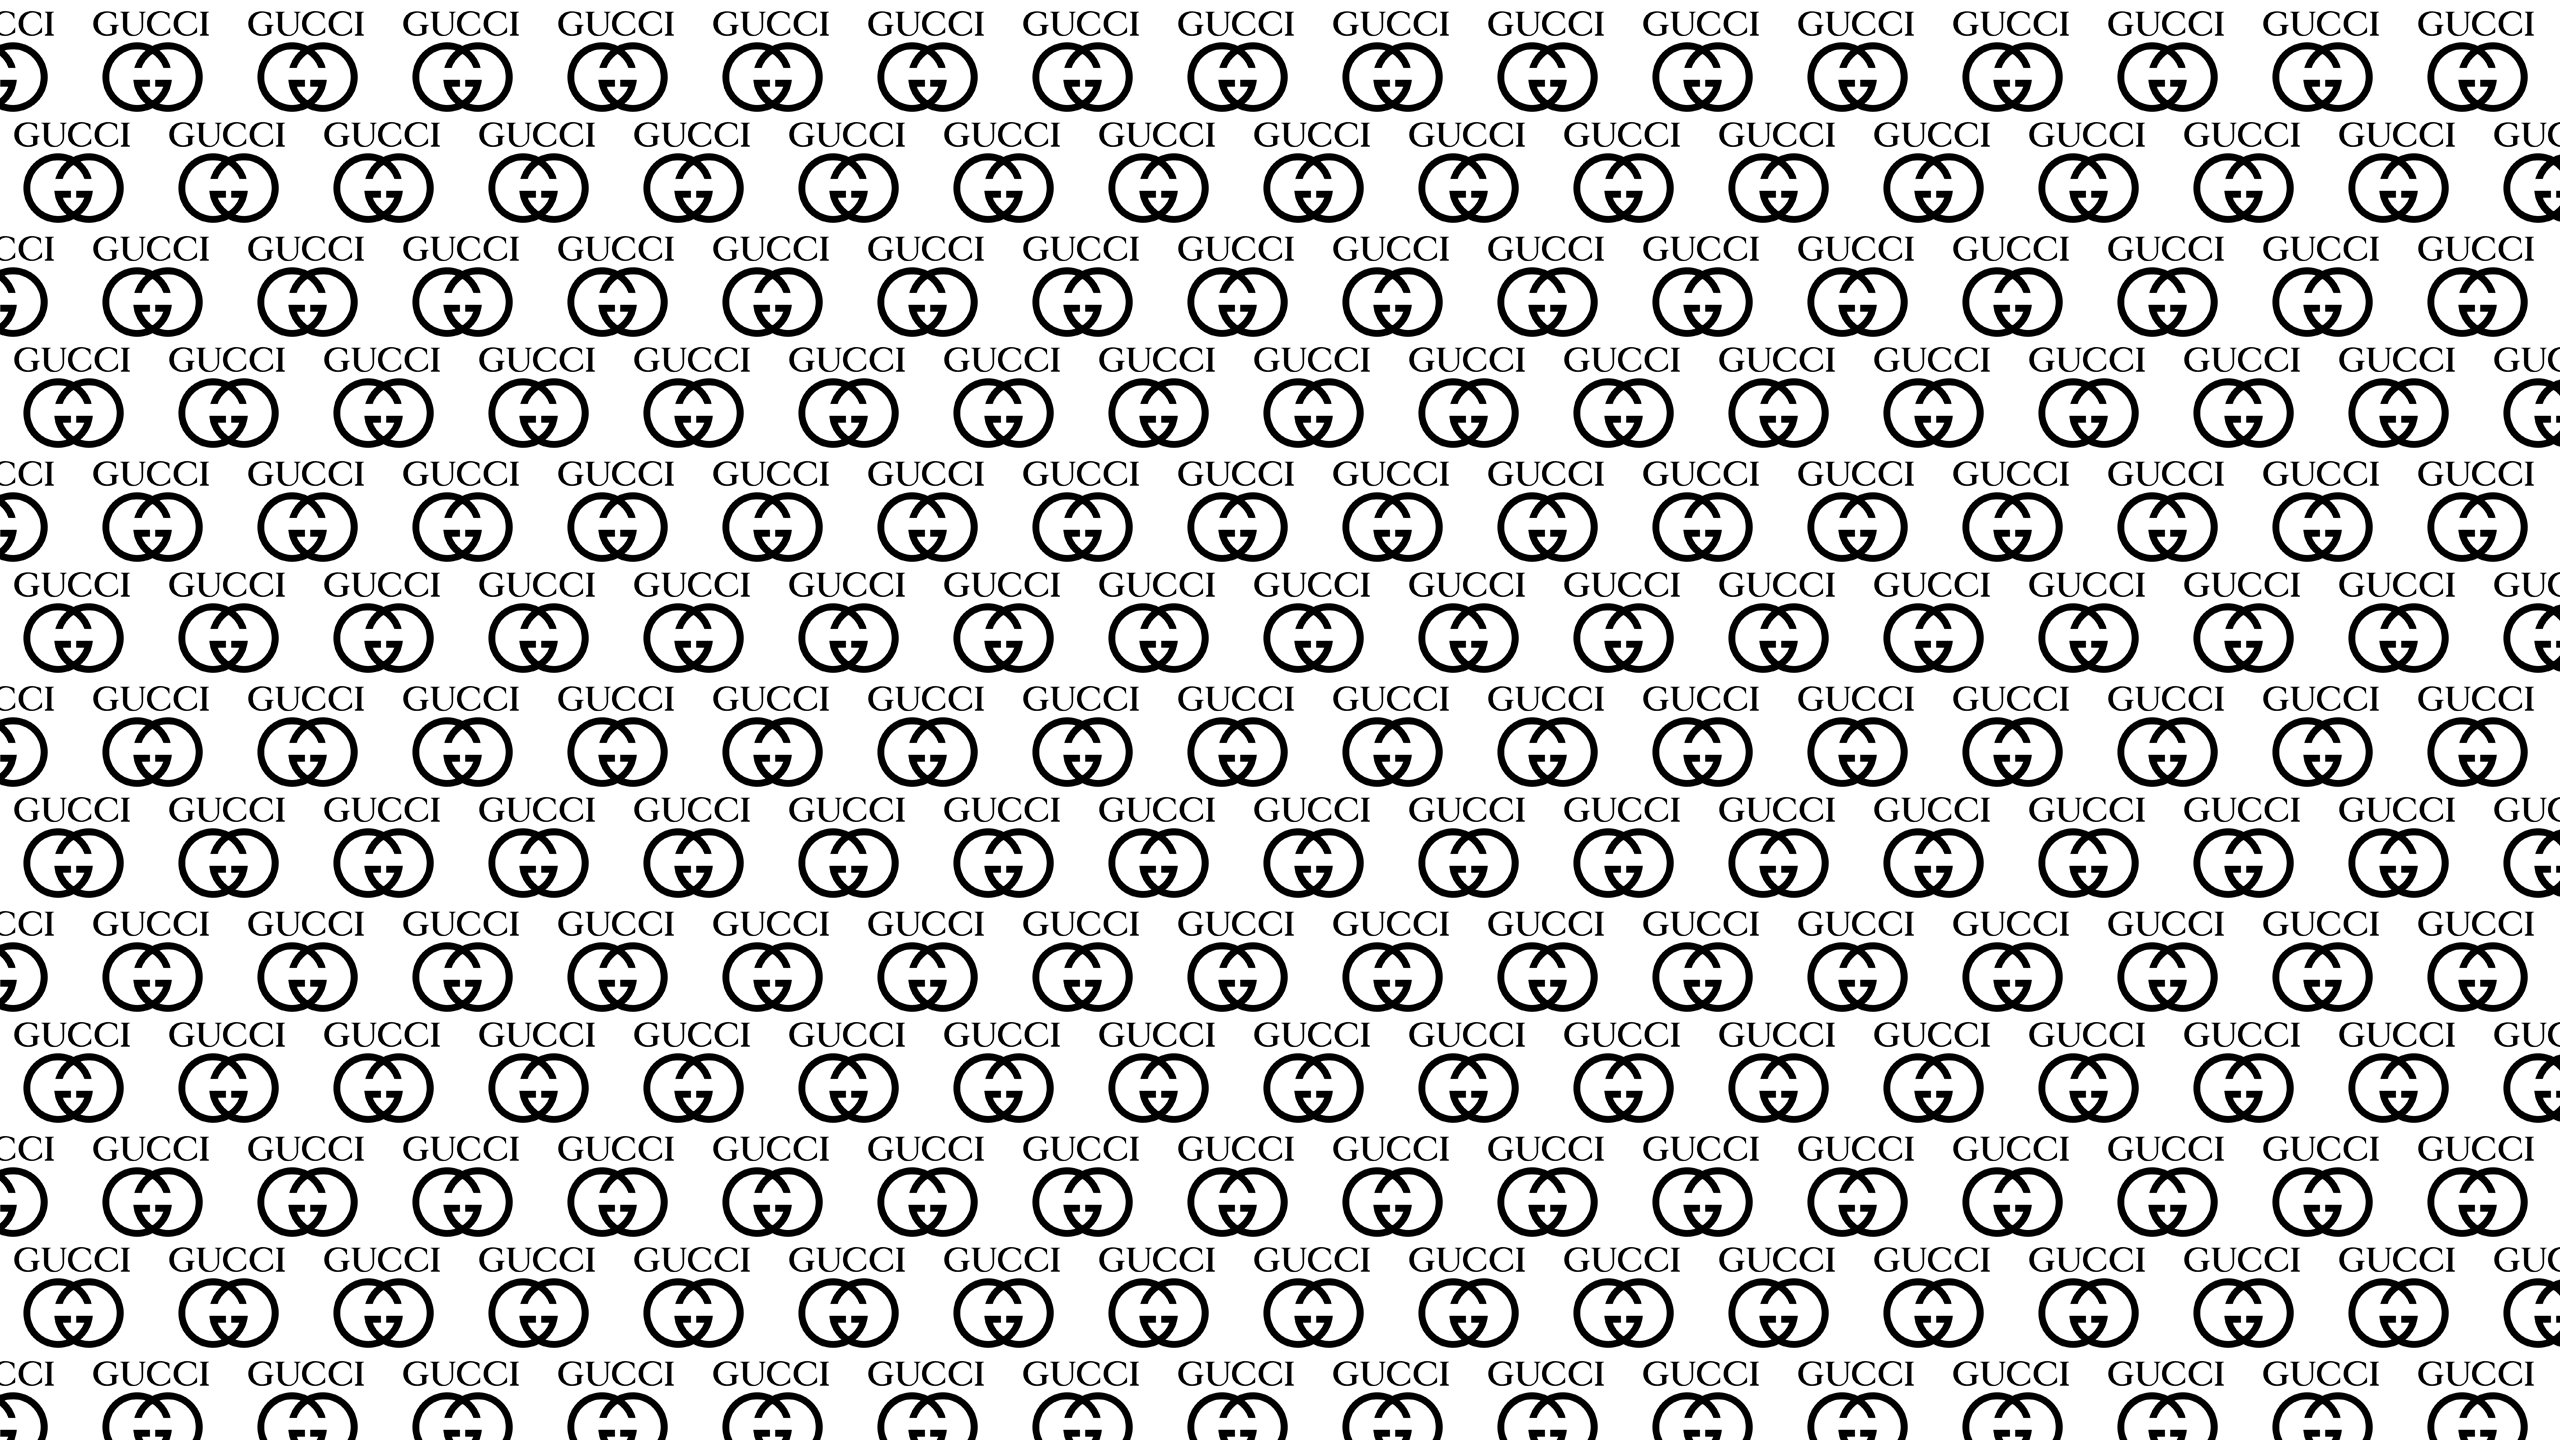 Gucci Wallpaper Download Iphone Pattern Other Jpg Pictures 2560x1440